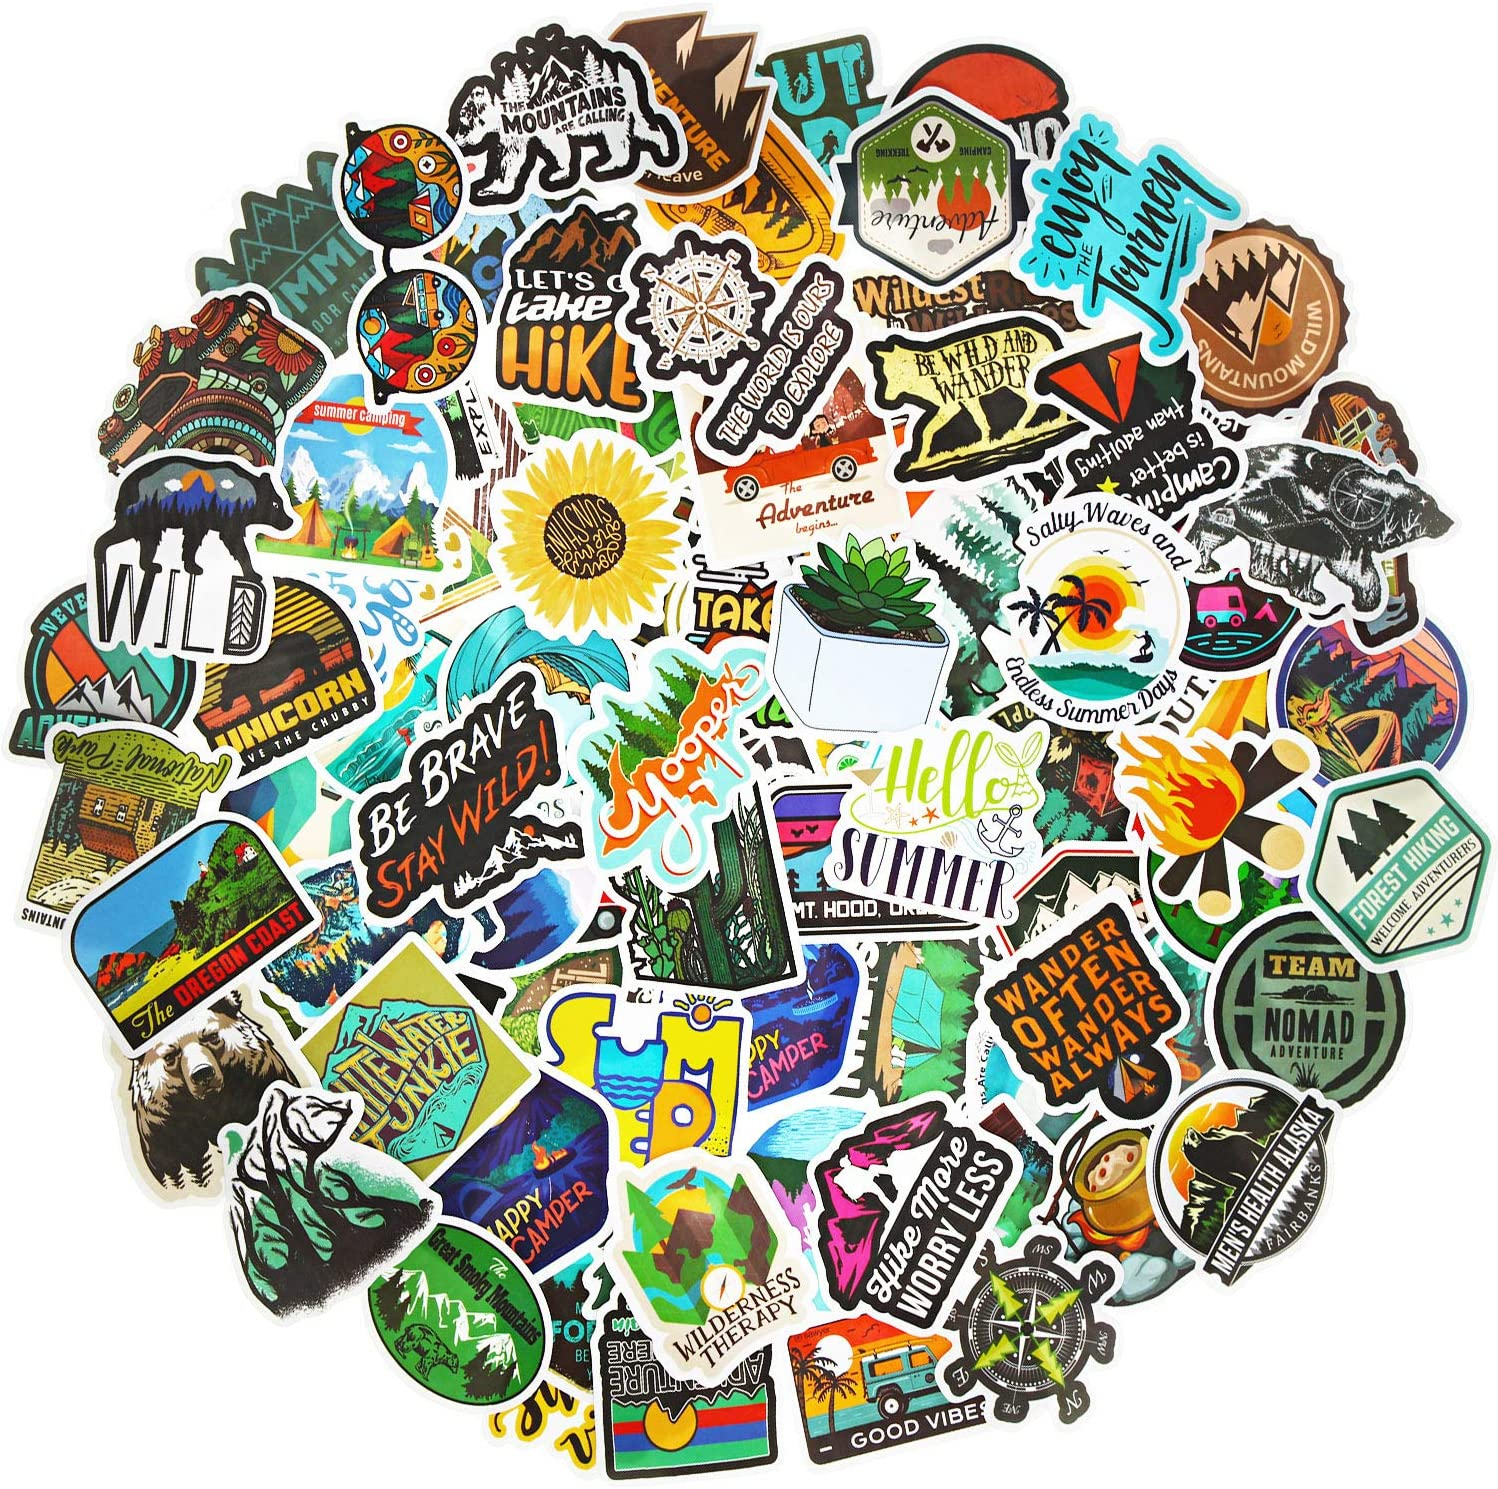 100 Pieces Adventure Outdoor Stickers Wilderness Nature Stickers Waterproof Hiking Camping Travel Stickers Vsco Vinyl Decals for Water Bottle Laptop Luggage Skateboard Snowboard Car Bicycle